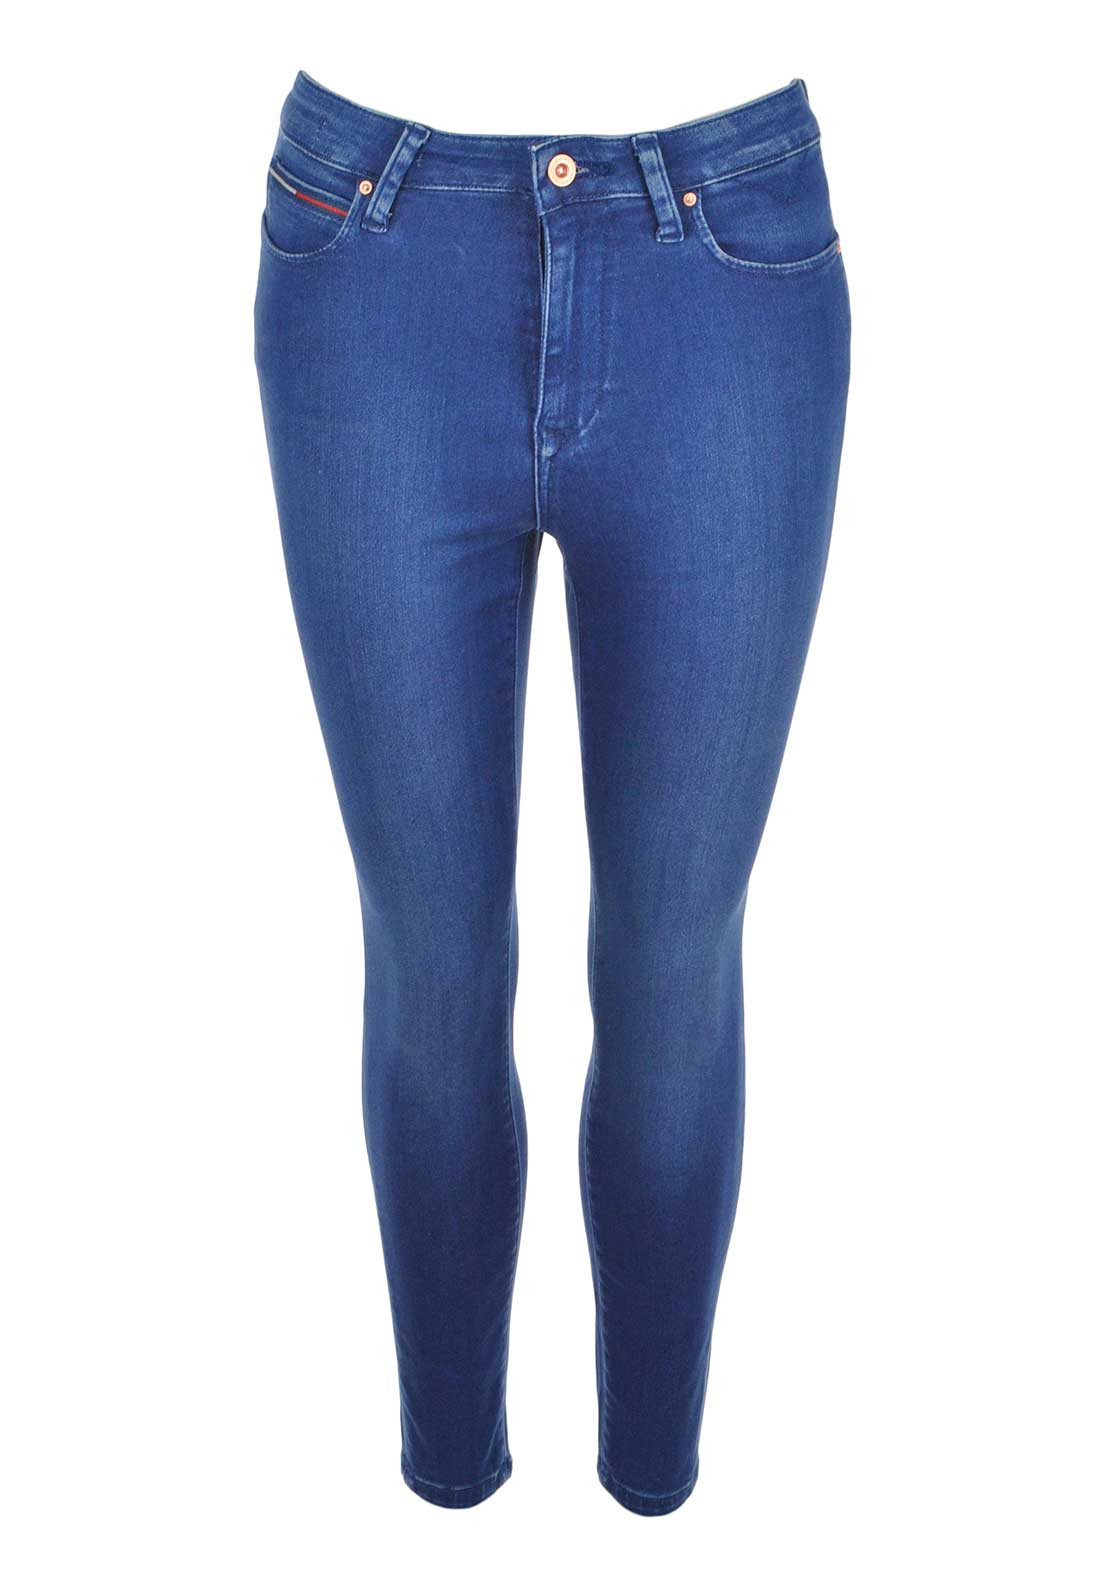 Tommy Hilfiger Womens Skye High Waist Skinny Jeans, Blue Denim